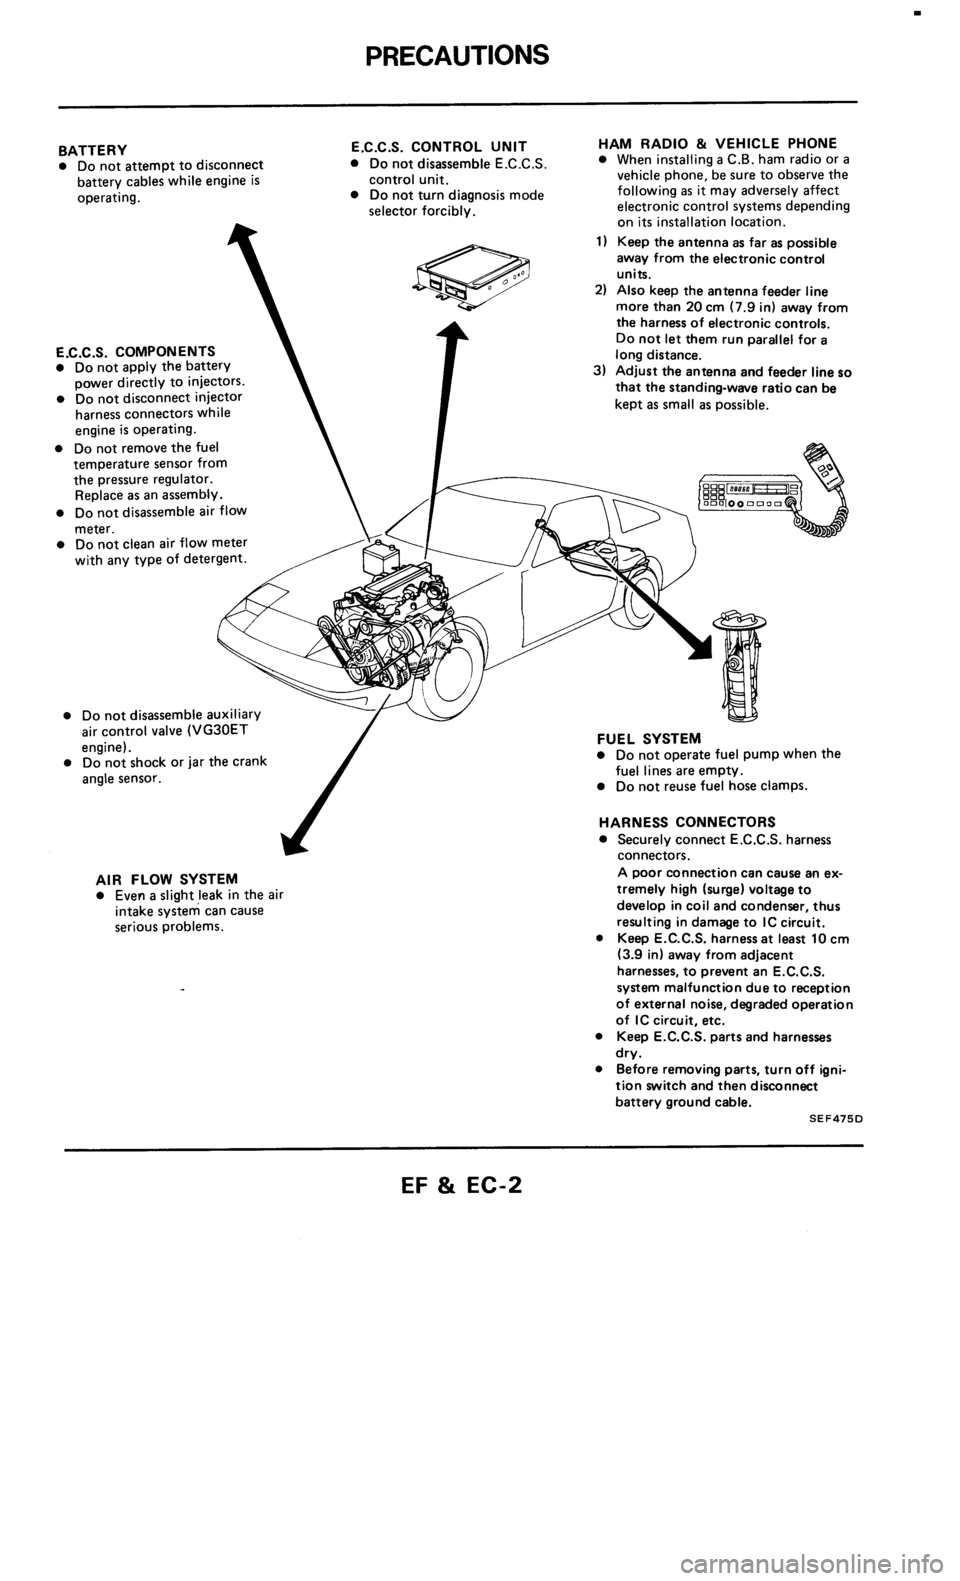 NISSAN 300ZX 1985 Z31 Engine Fuel And Emission Control